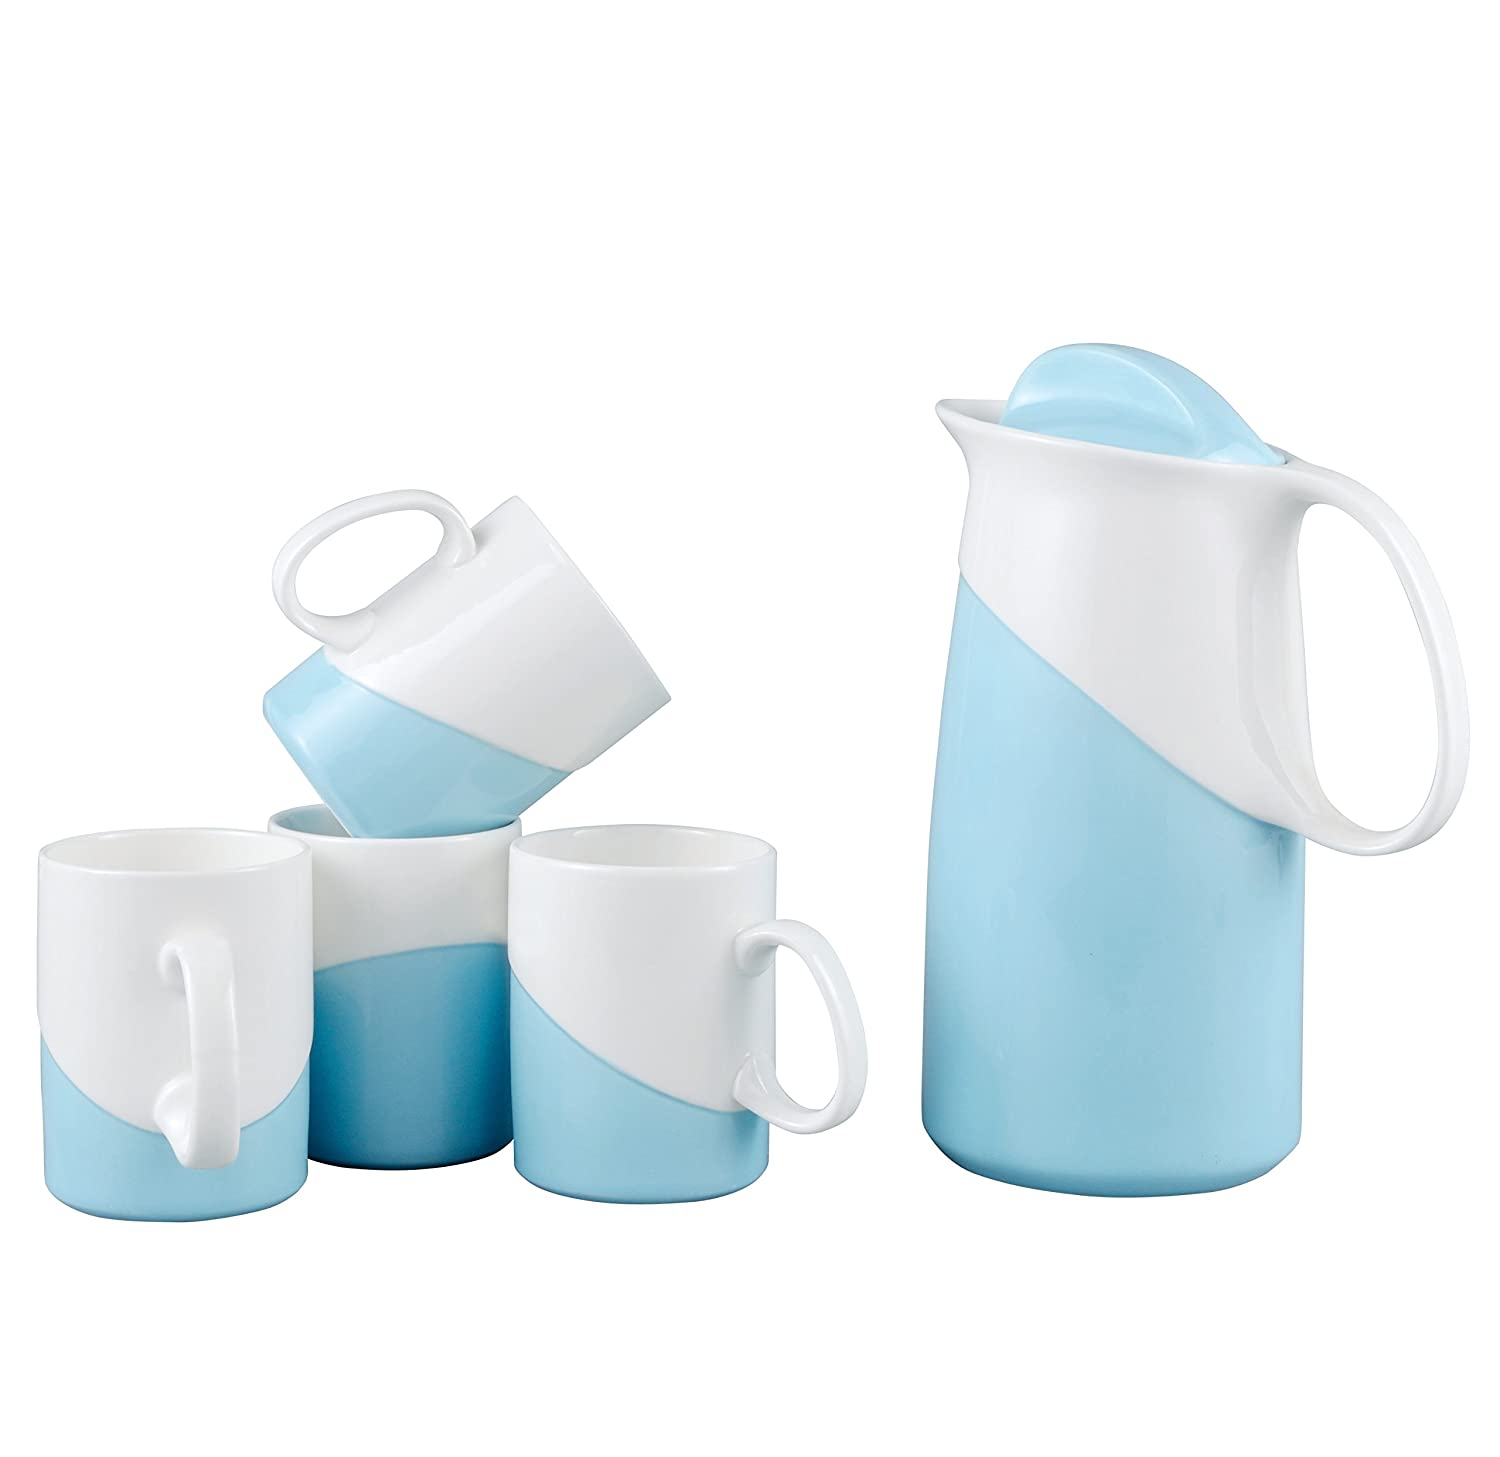 Neolith Simple Water Tea Cup and Kettle Set (Deep Sky Blue, Set of 5)